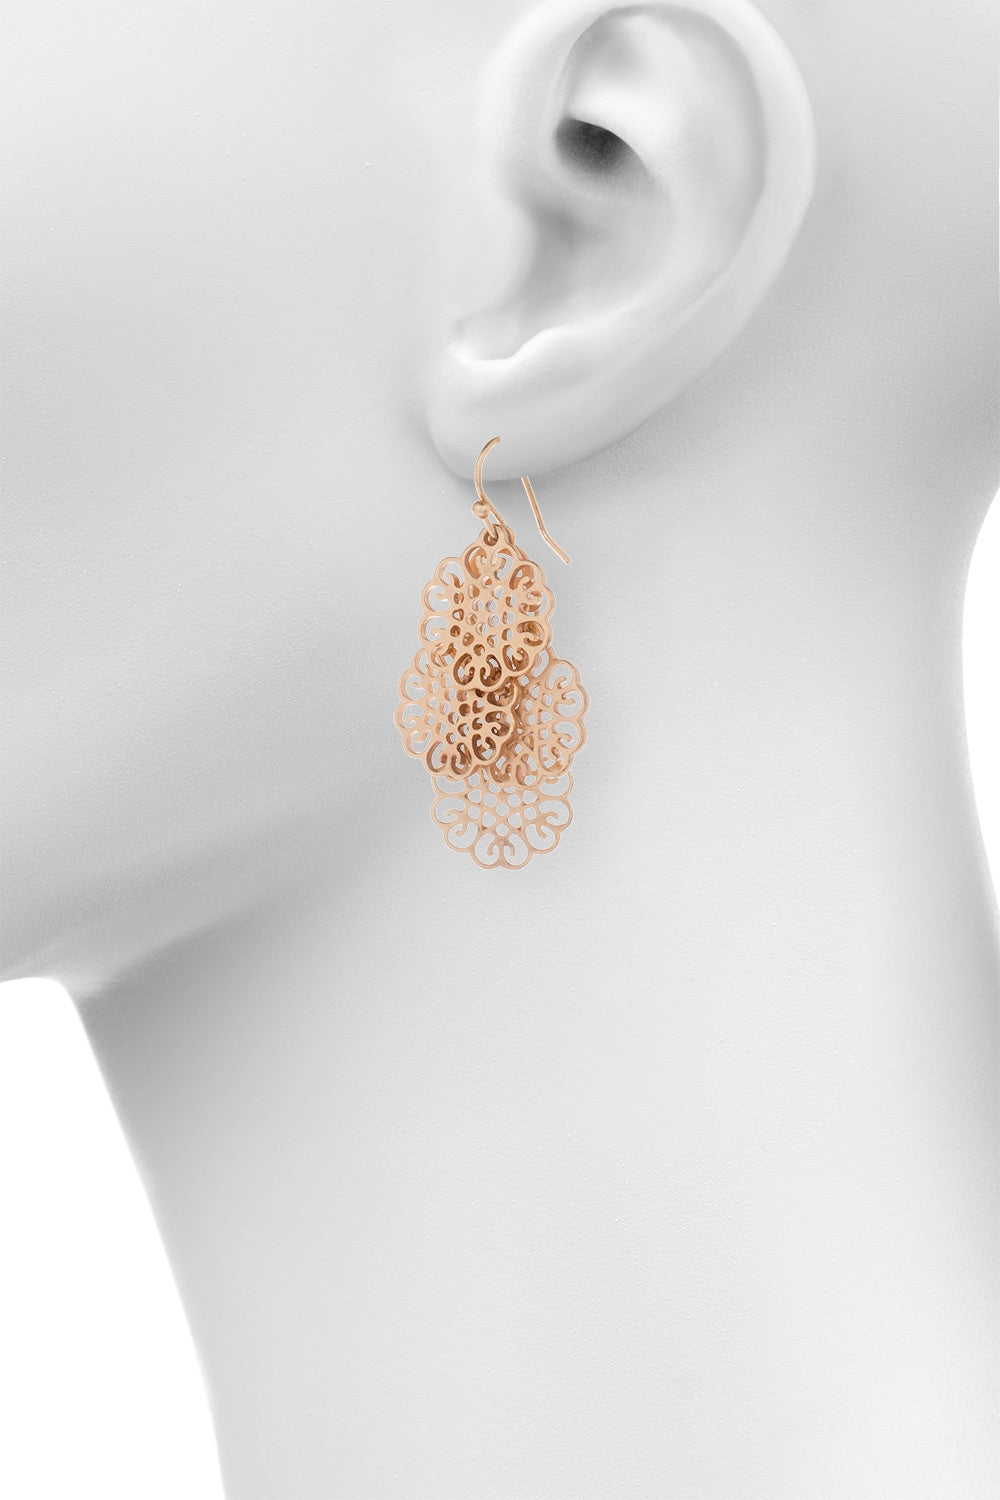 Type 1 Dash Of Gold Earrings